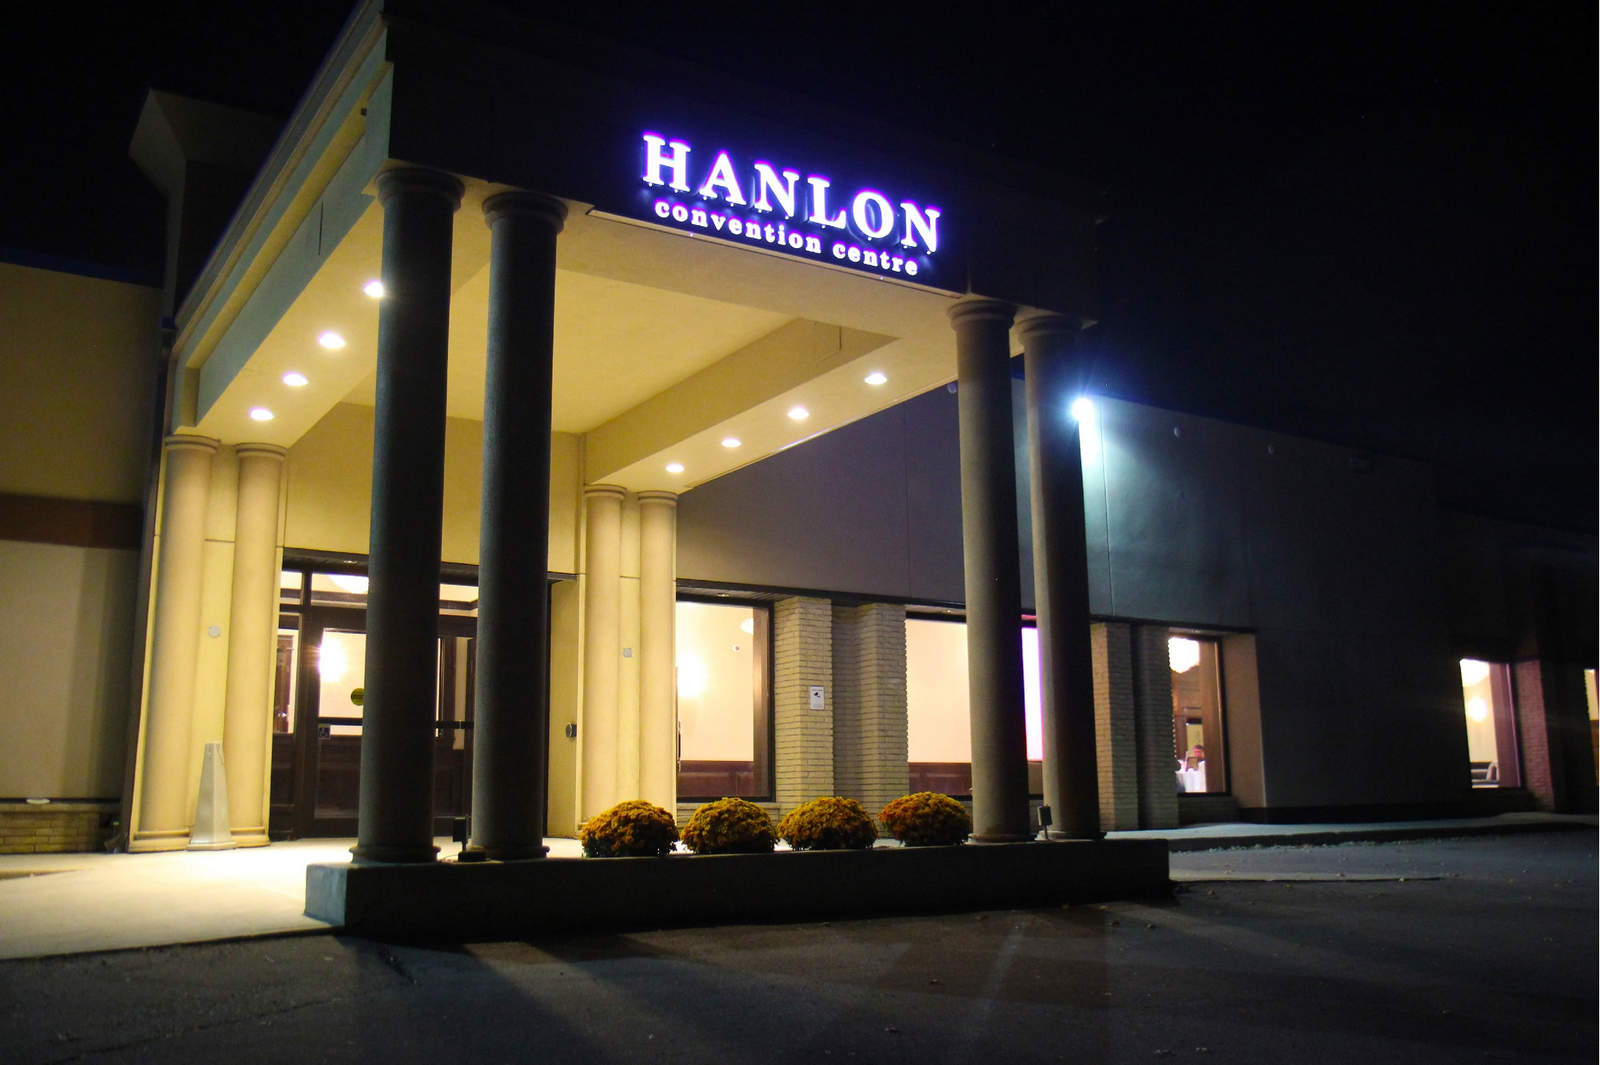 Hanlon Convention Centre | Guelph